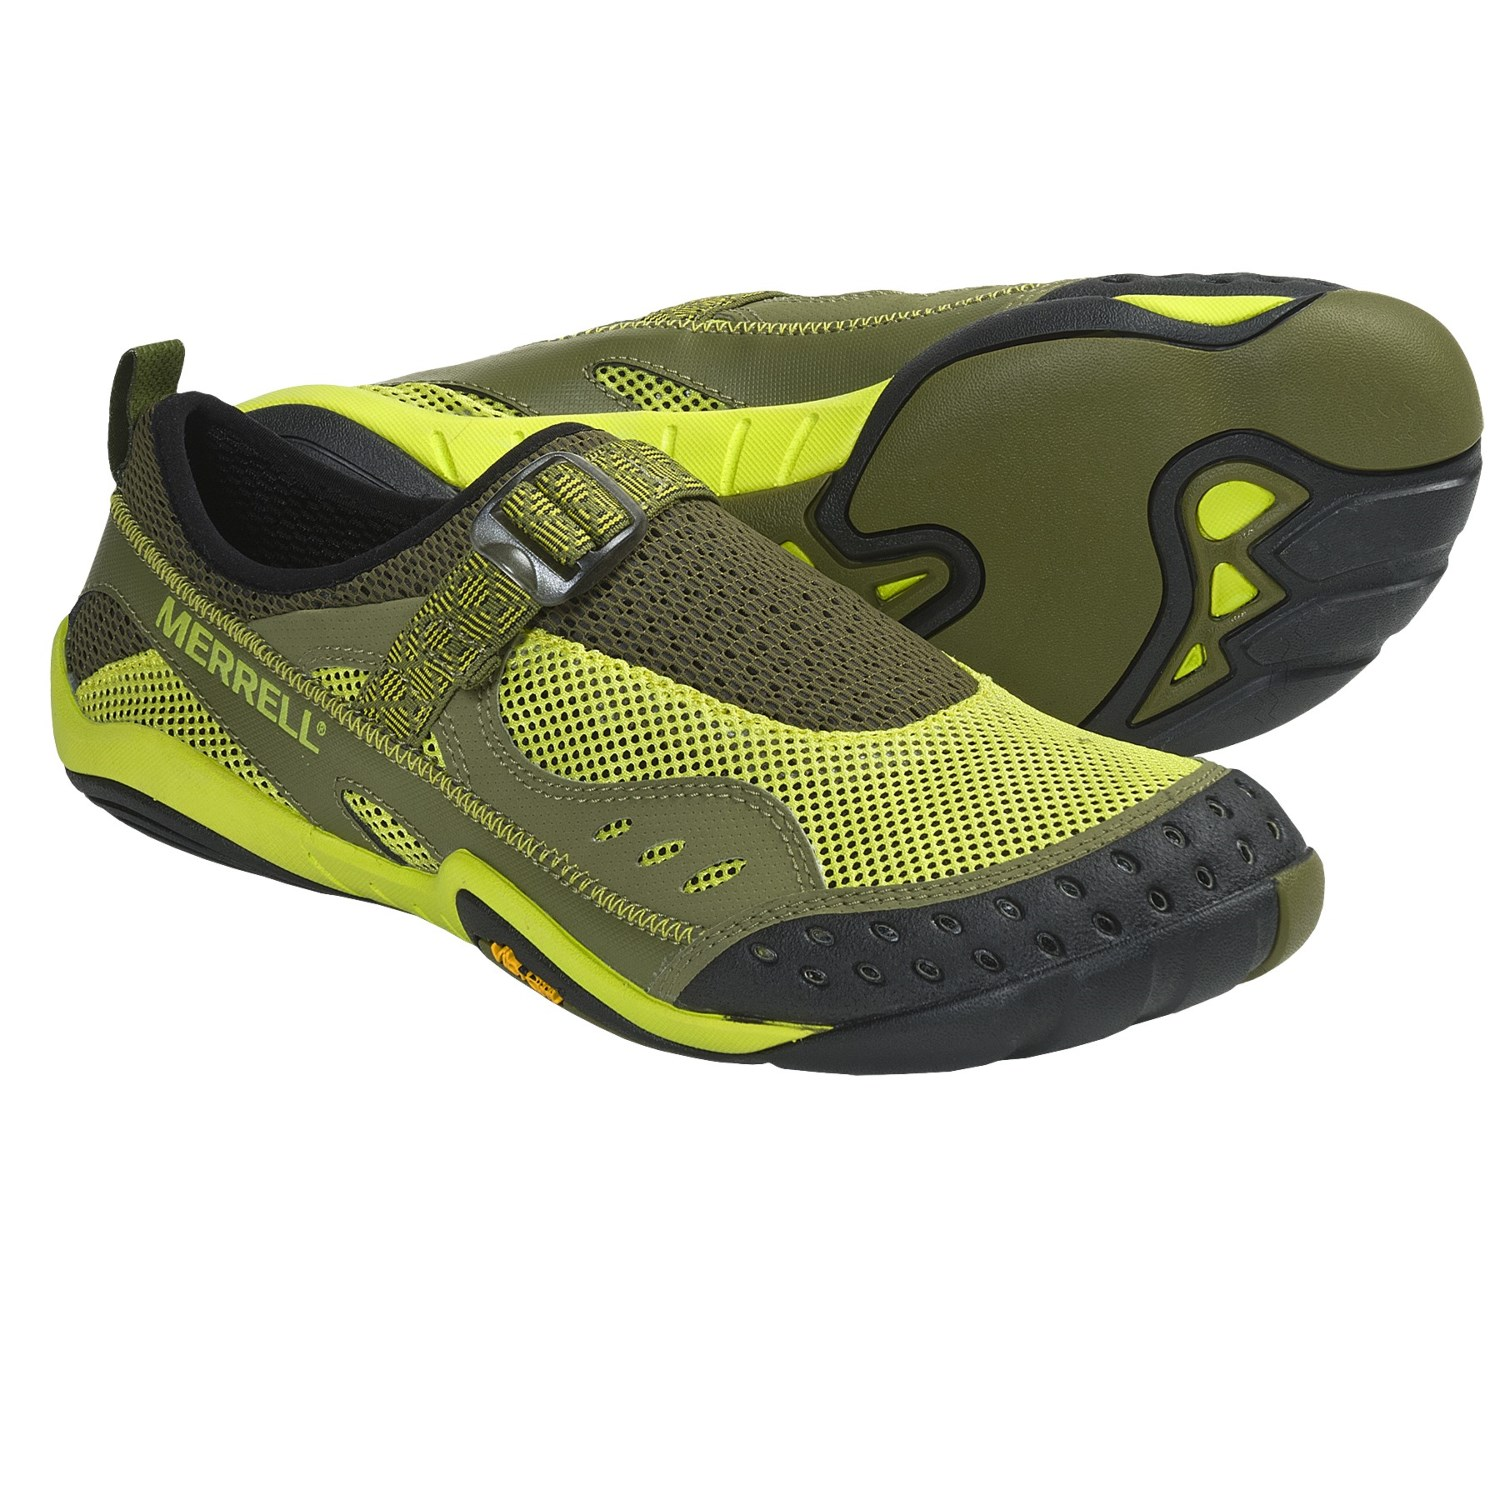 Merrell Water Shoes For Men